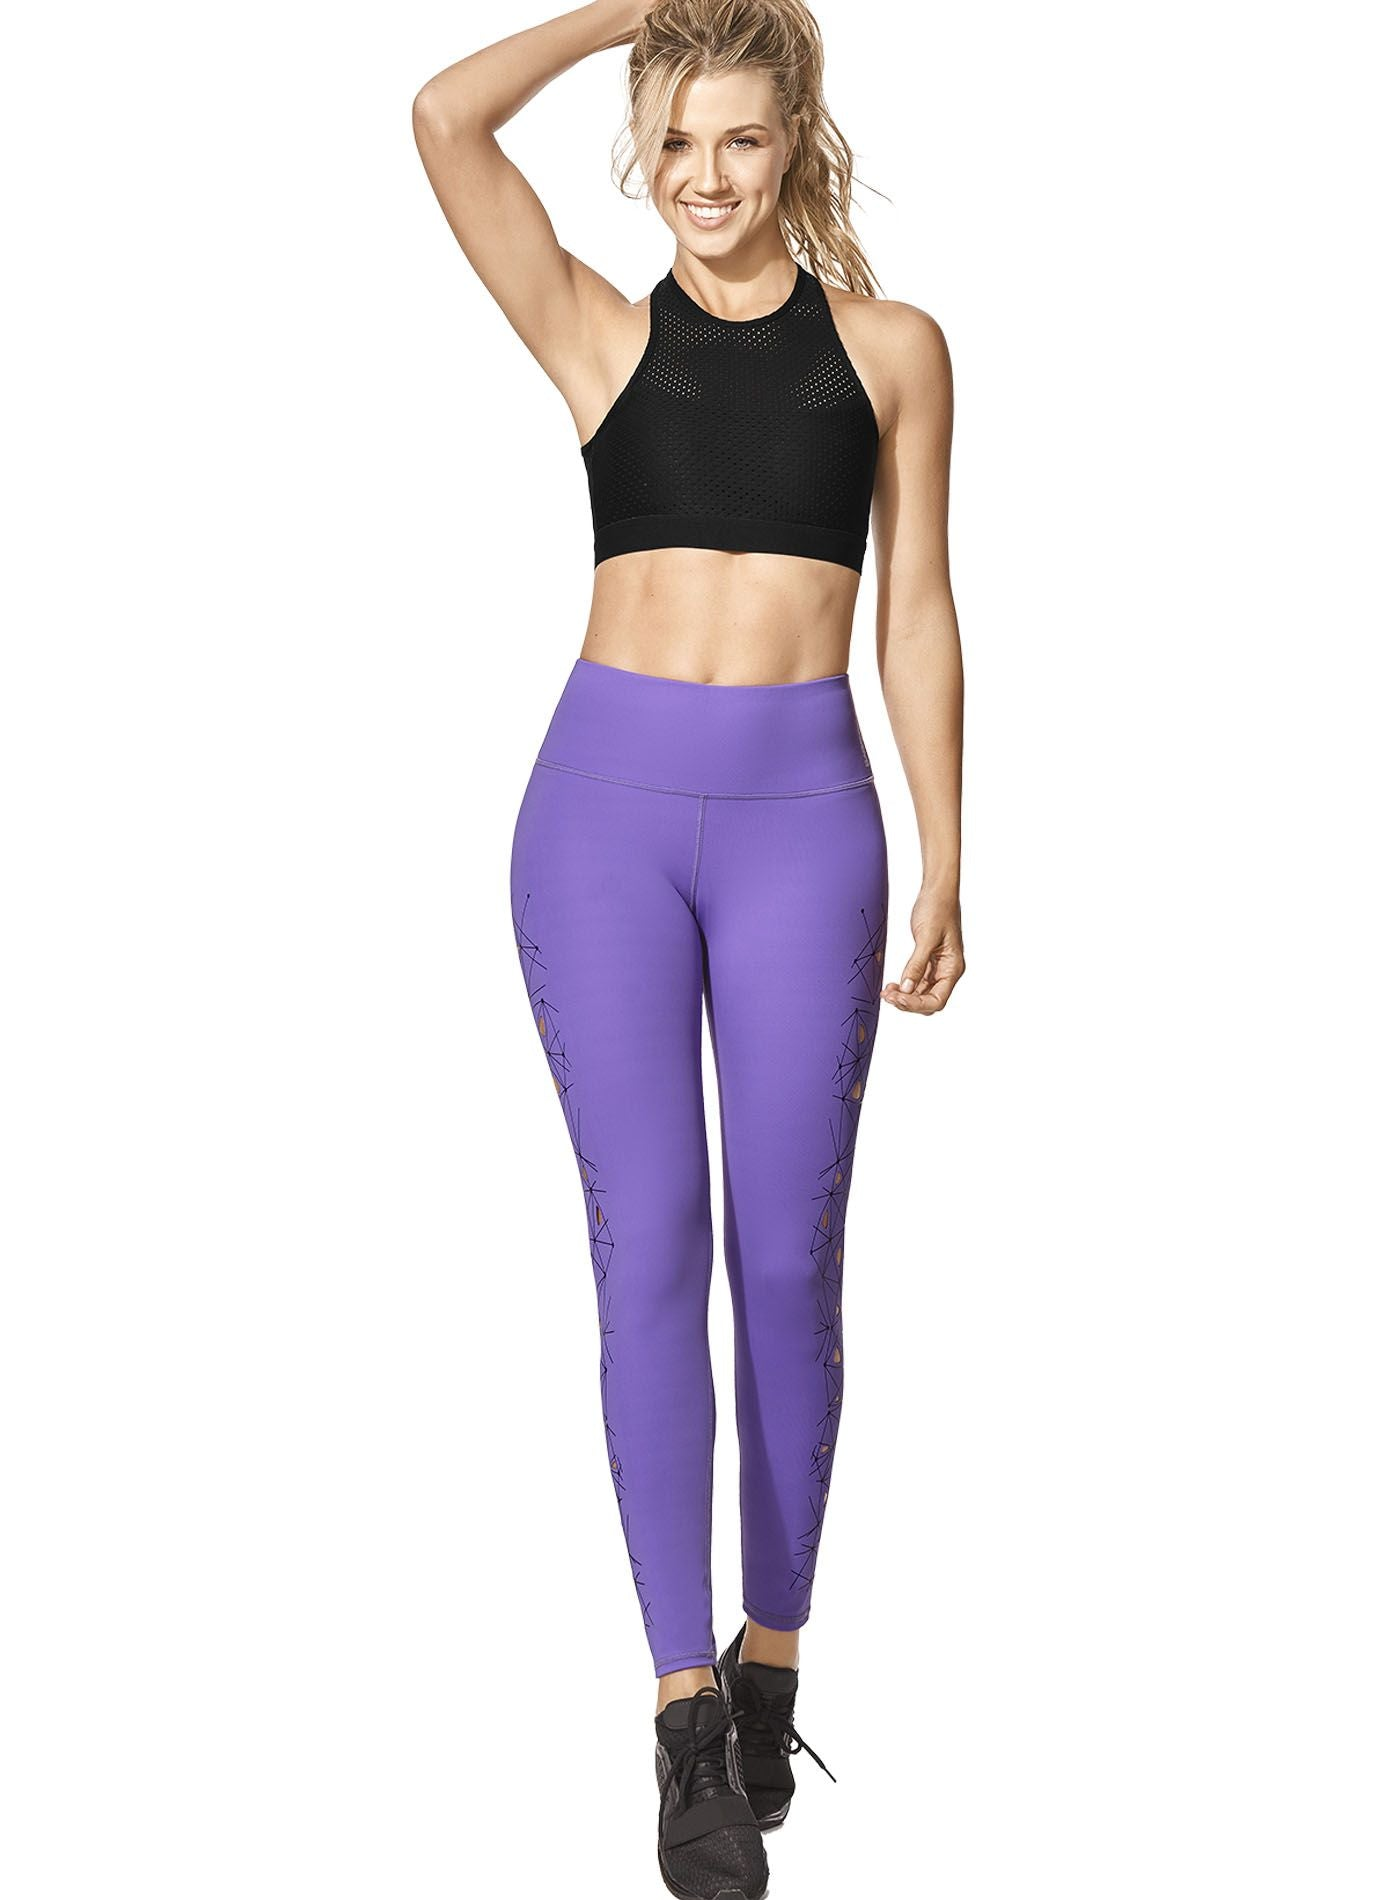 POLYAMIDE LEGGINGS ONE SIZE Ref. 70653